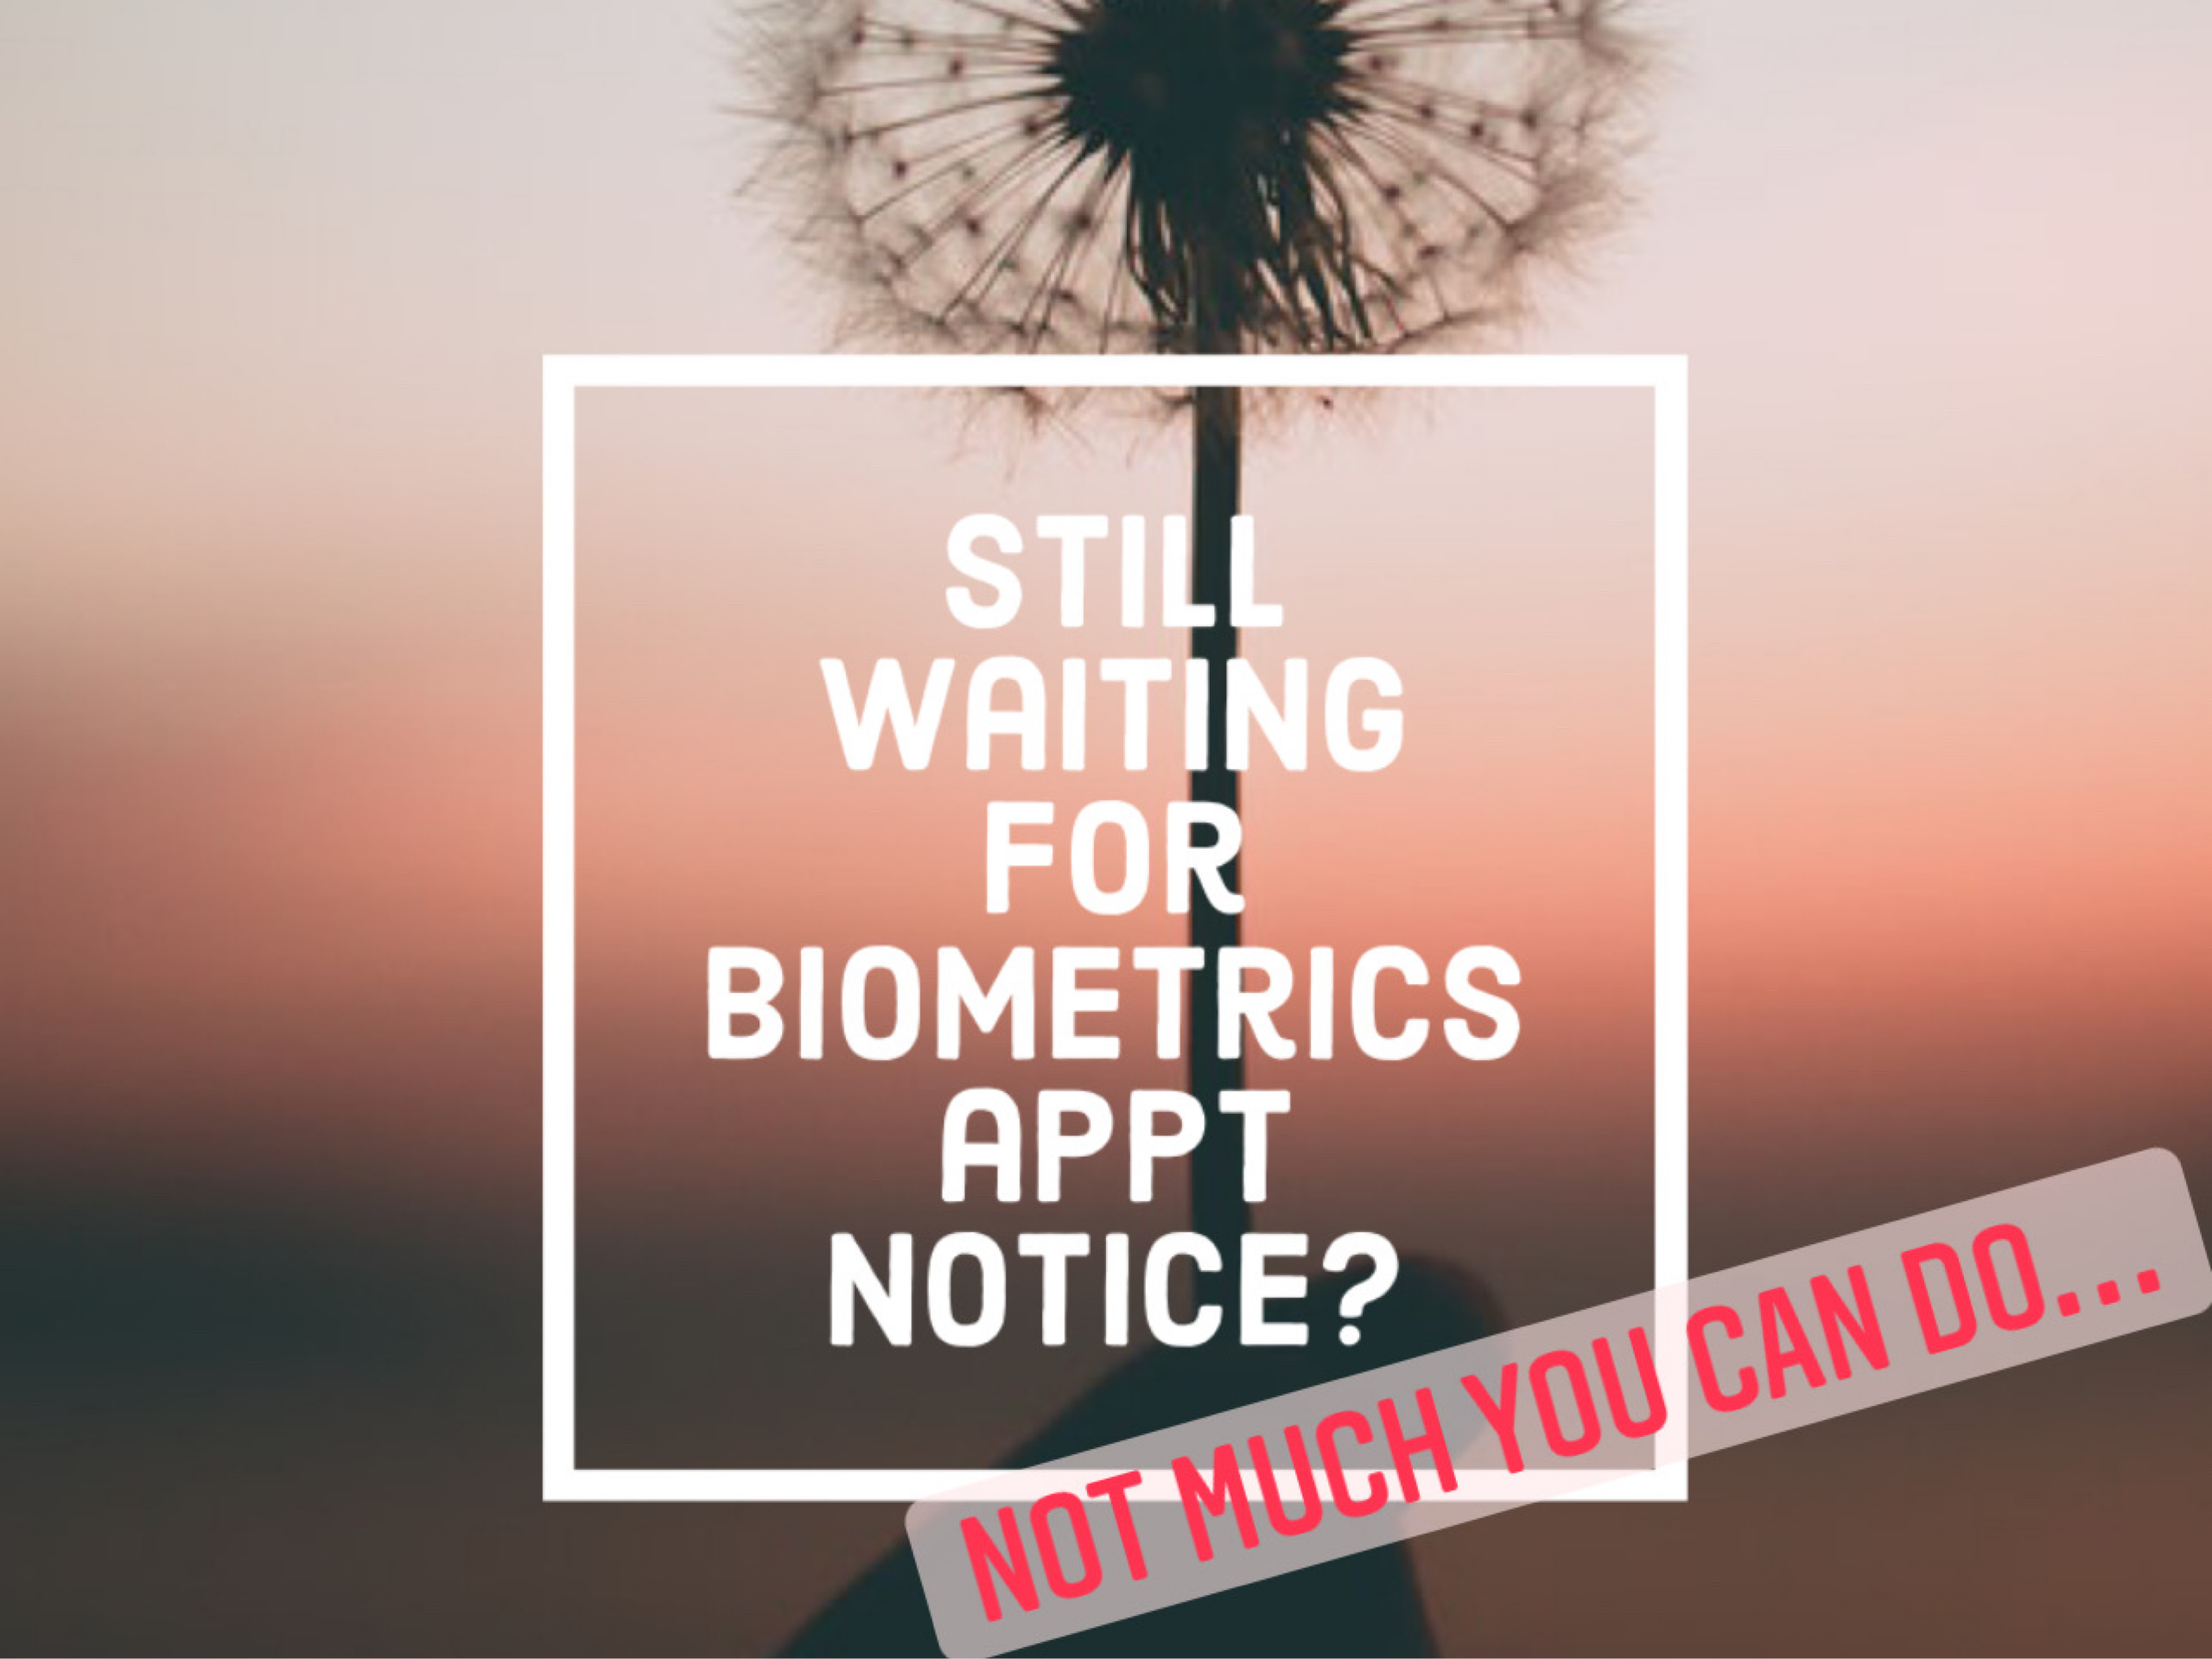 Still Haven't Received Biometric Appointment Notice? Not much you can do